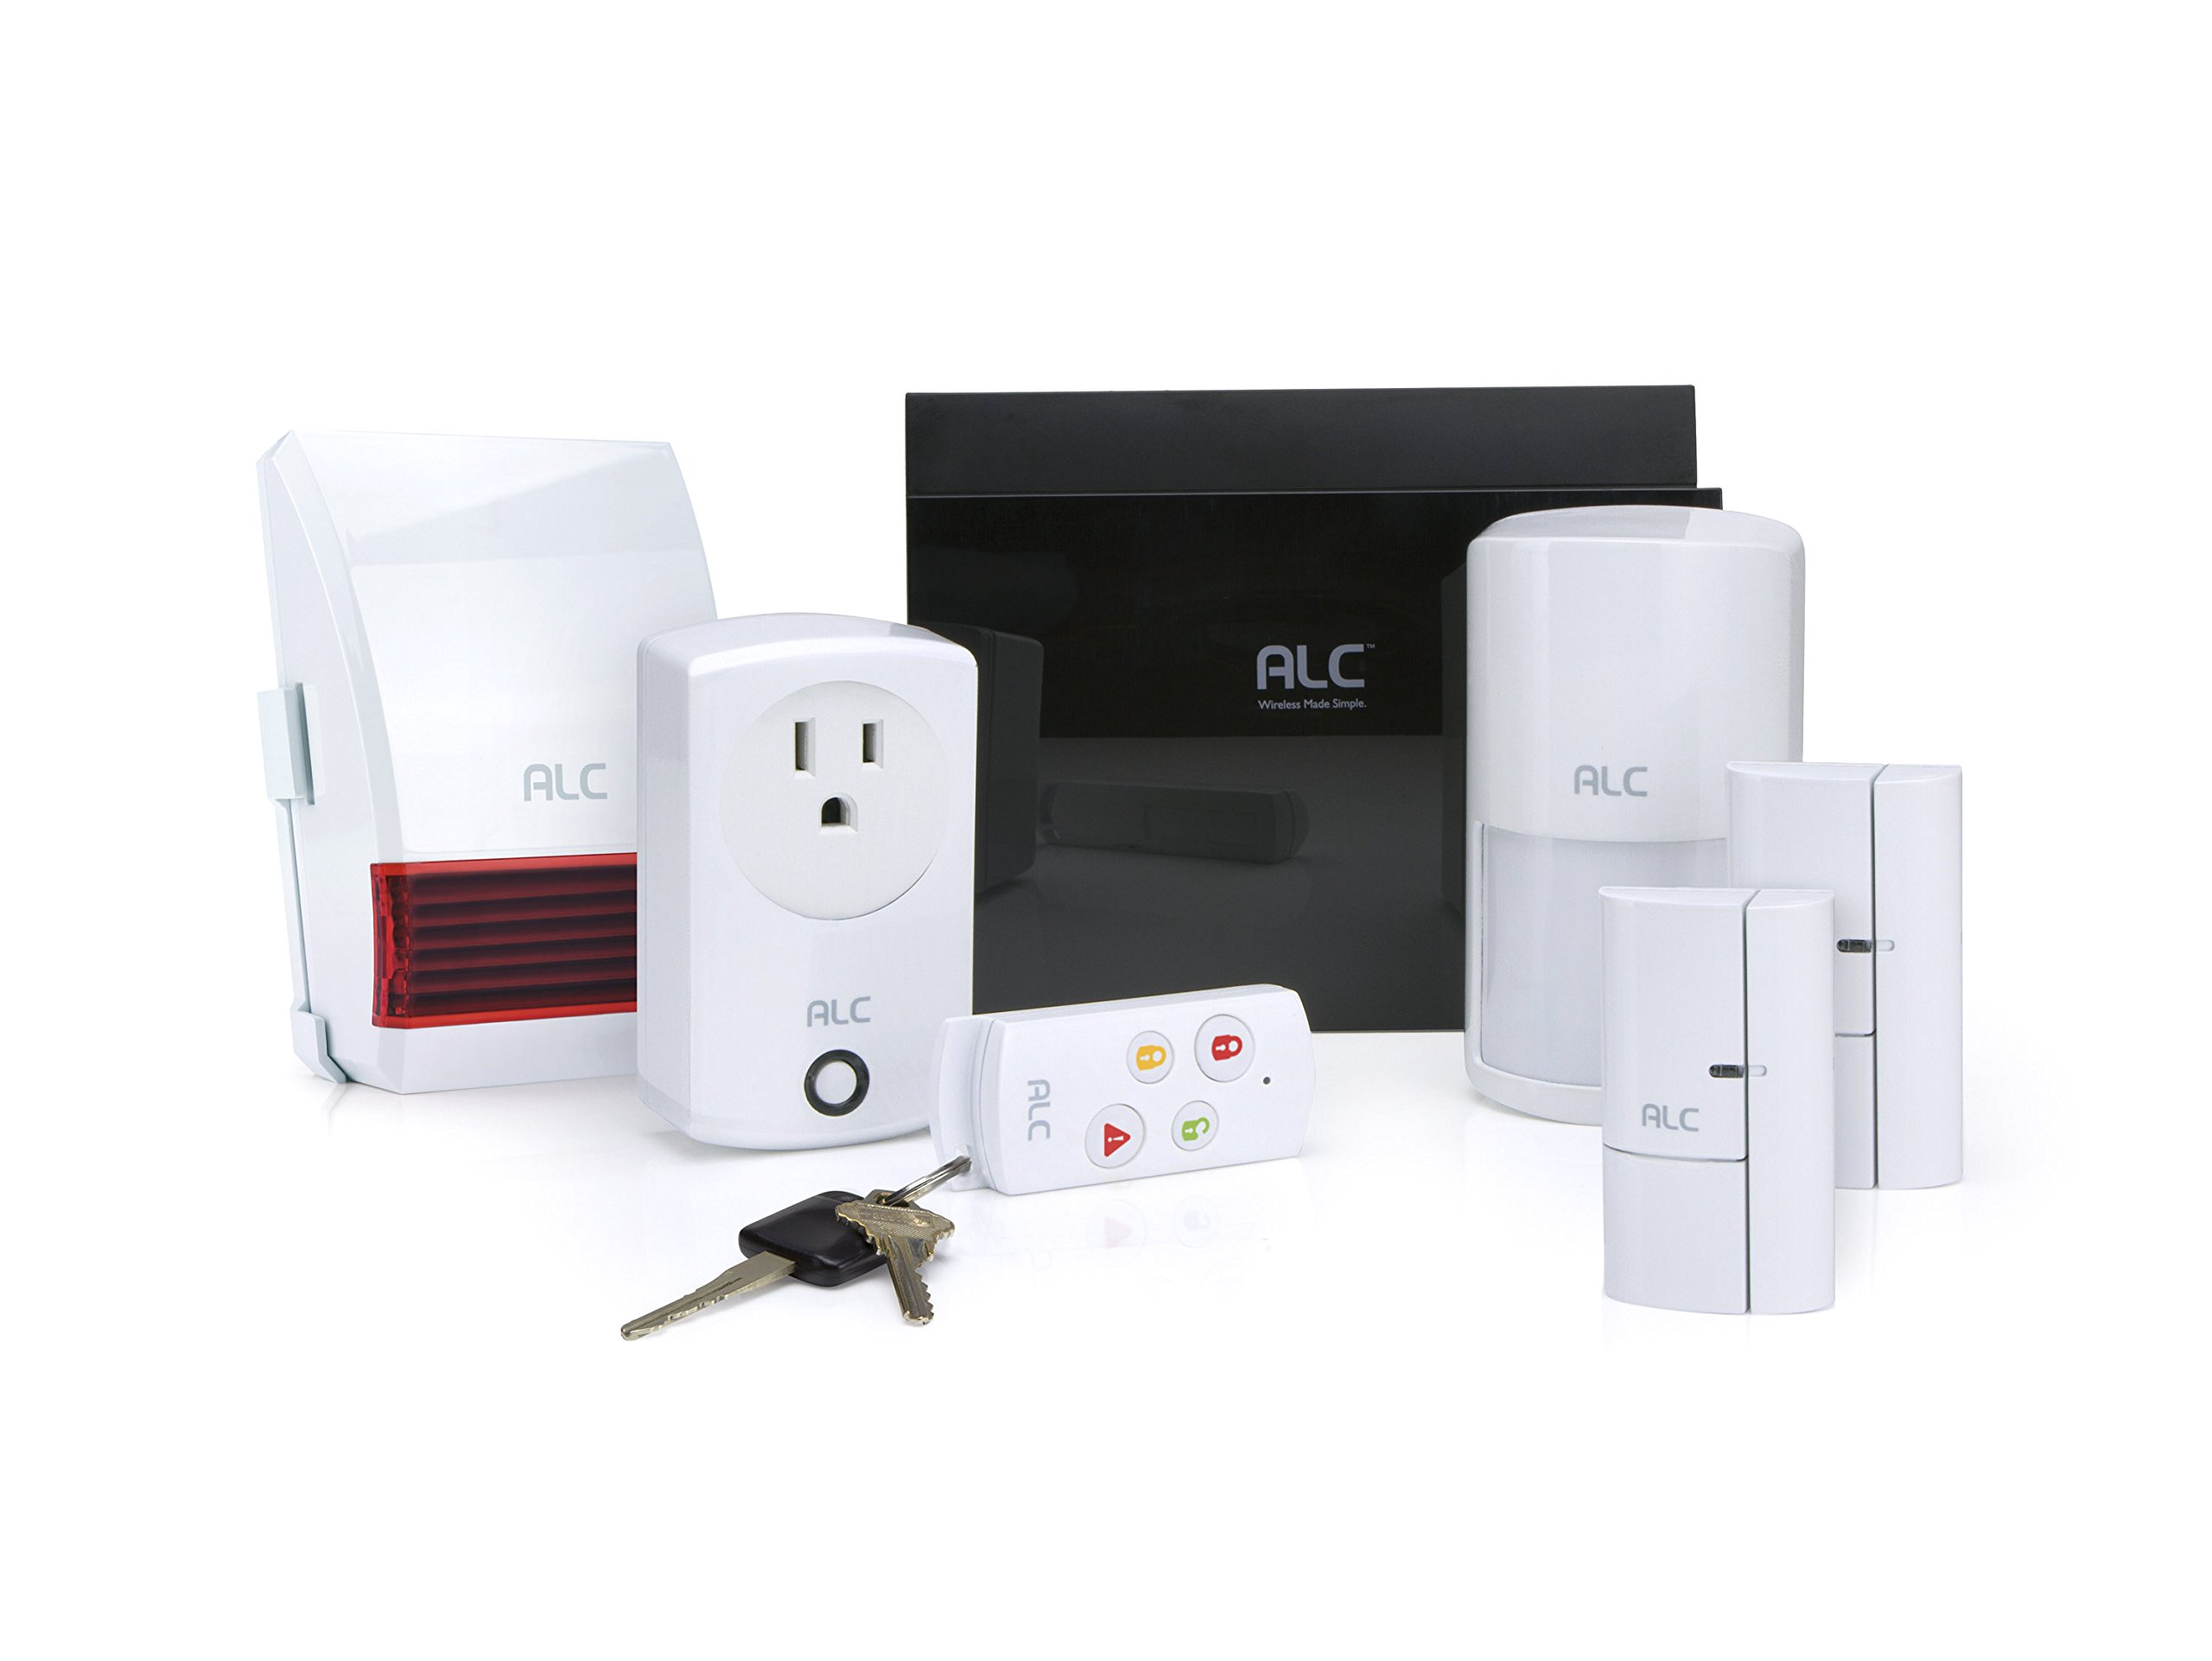 ALC AHS616 Connect Home Wireless Security System DIY Self Monitoring System using the ALC Connect App on your Android or Apple (iOS) Phone or Tablet by ALC